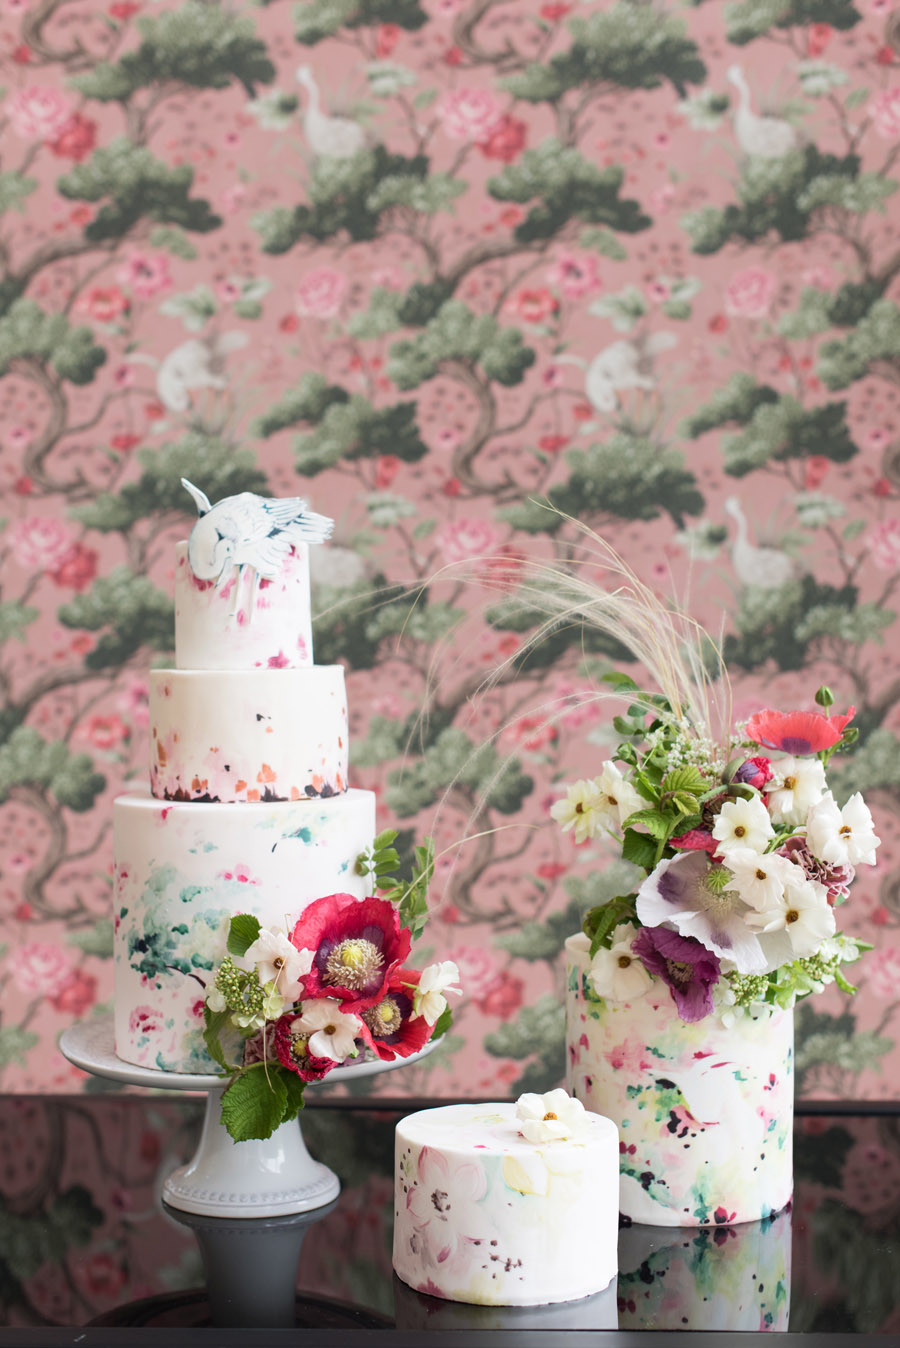 floral wedding ideas at Millbridge Court on English Wedding - photo credit Julie Michaelsen Photography (1)